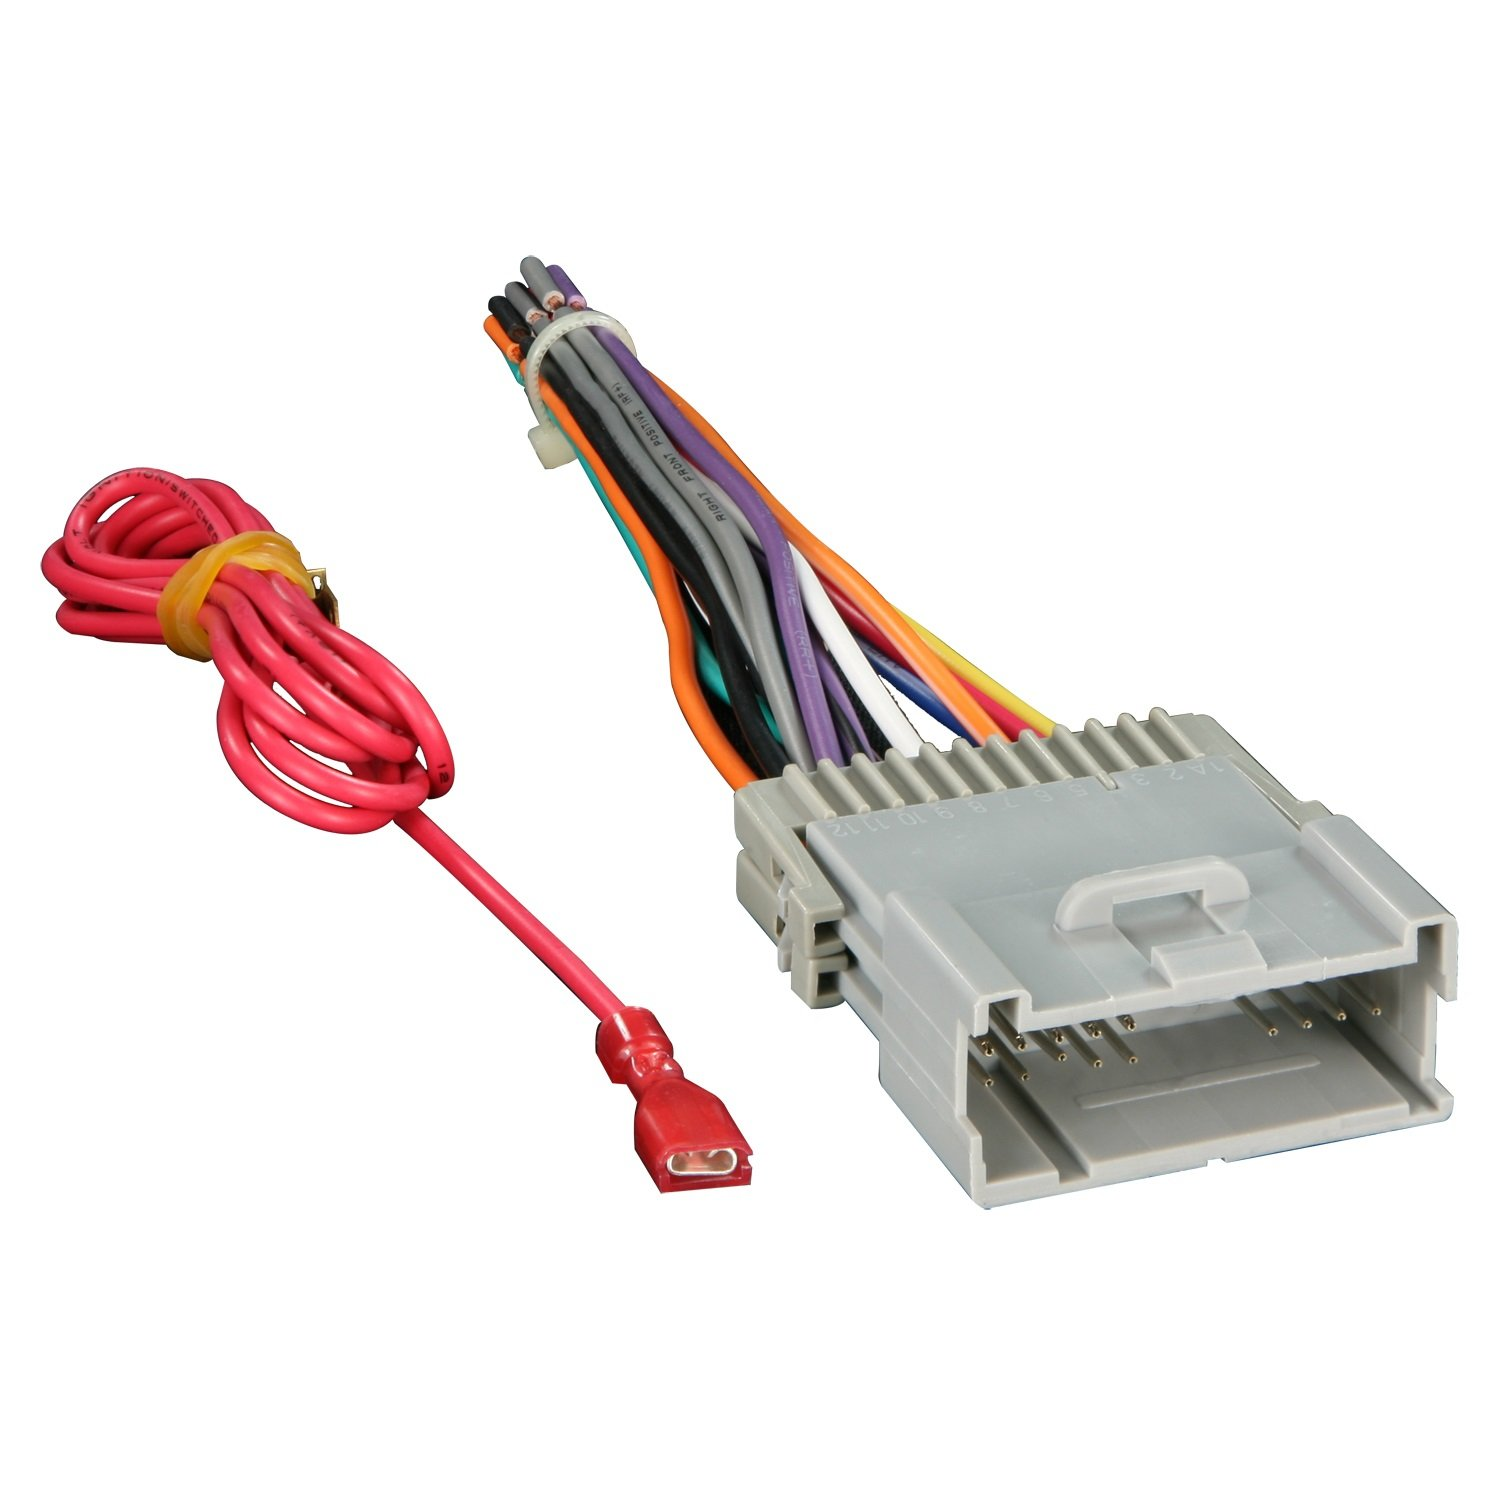 61eewxp9orL._SL1500_ amazon com metra 70 2003 radio wiring harness for gm 98 08 05 colorado radio wiring harness at crackthecode.co